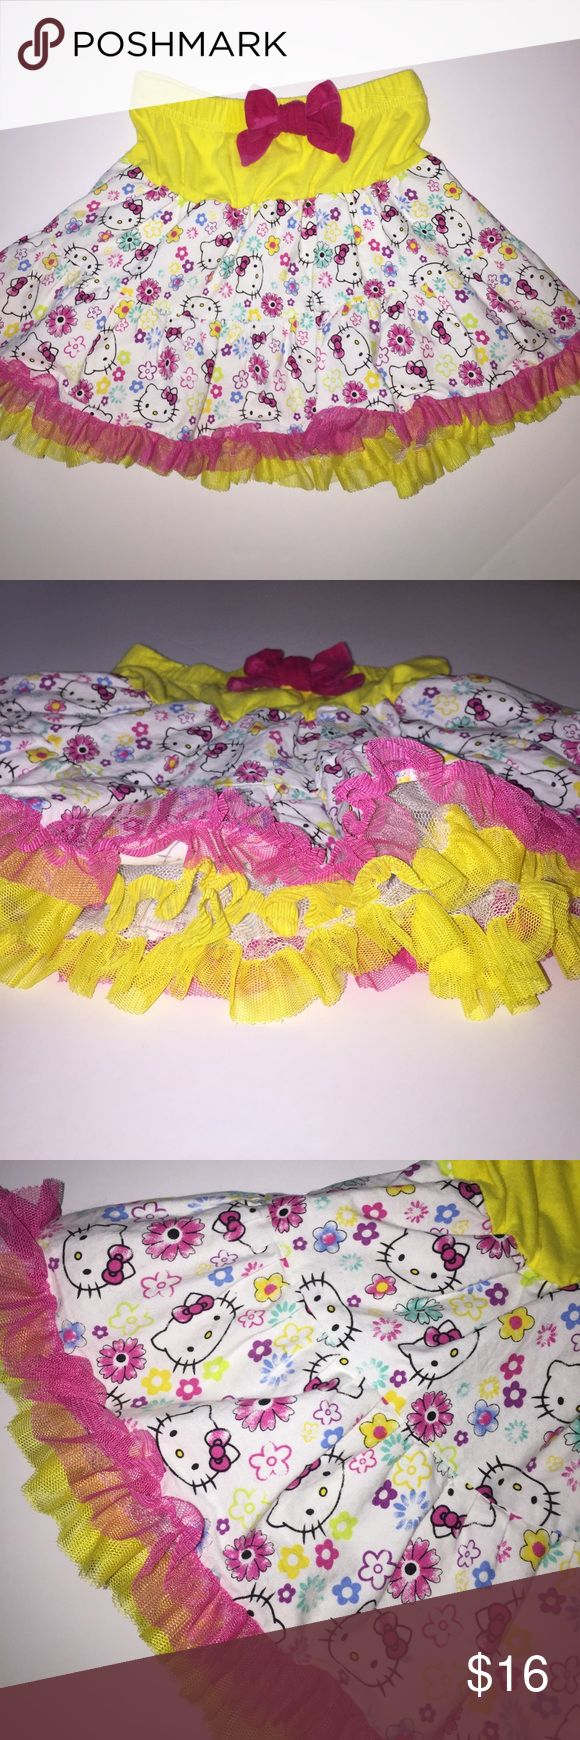 Gorgeous Hello Kitty tutu skirt size 5 excellent! This adorable hello kitty skirt has a cute hello Kitty print with flowers and elastic pull on skirt with pink bow. Tutu Ruffle hen. 3 Layers of Tulle for major Twirl factor. Excellent Condition Size 5 Hello Kitty Bottoms Skirts